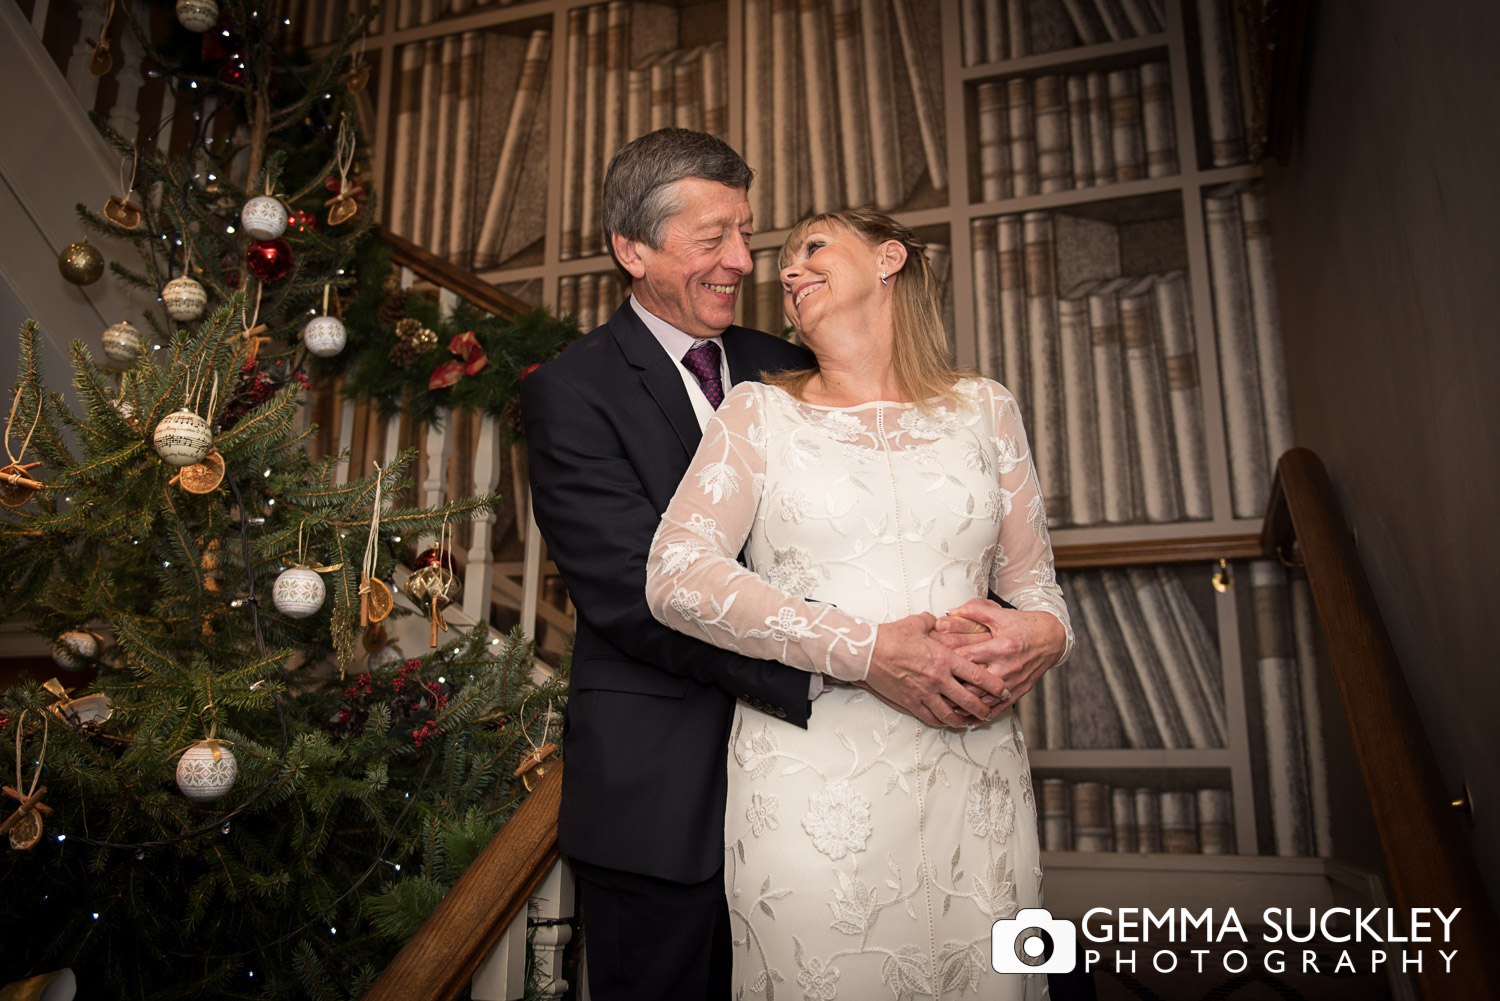 bride and groom at their Christmas wedding in The Devonshire Arms, Bolton abbey